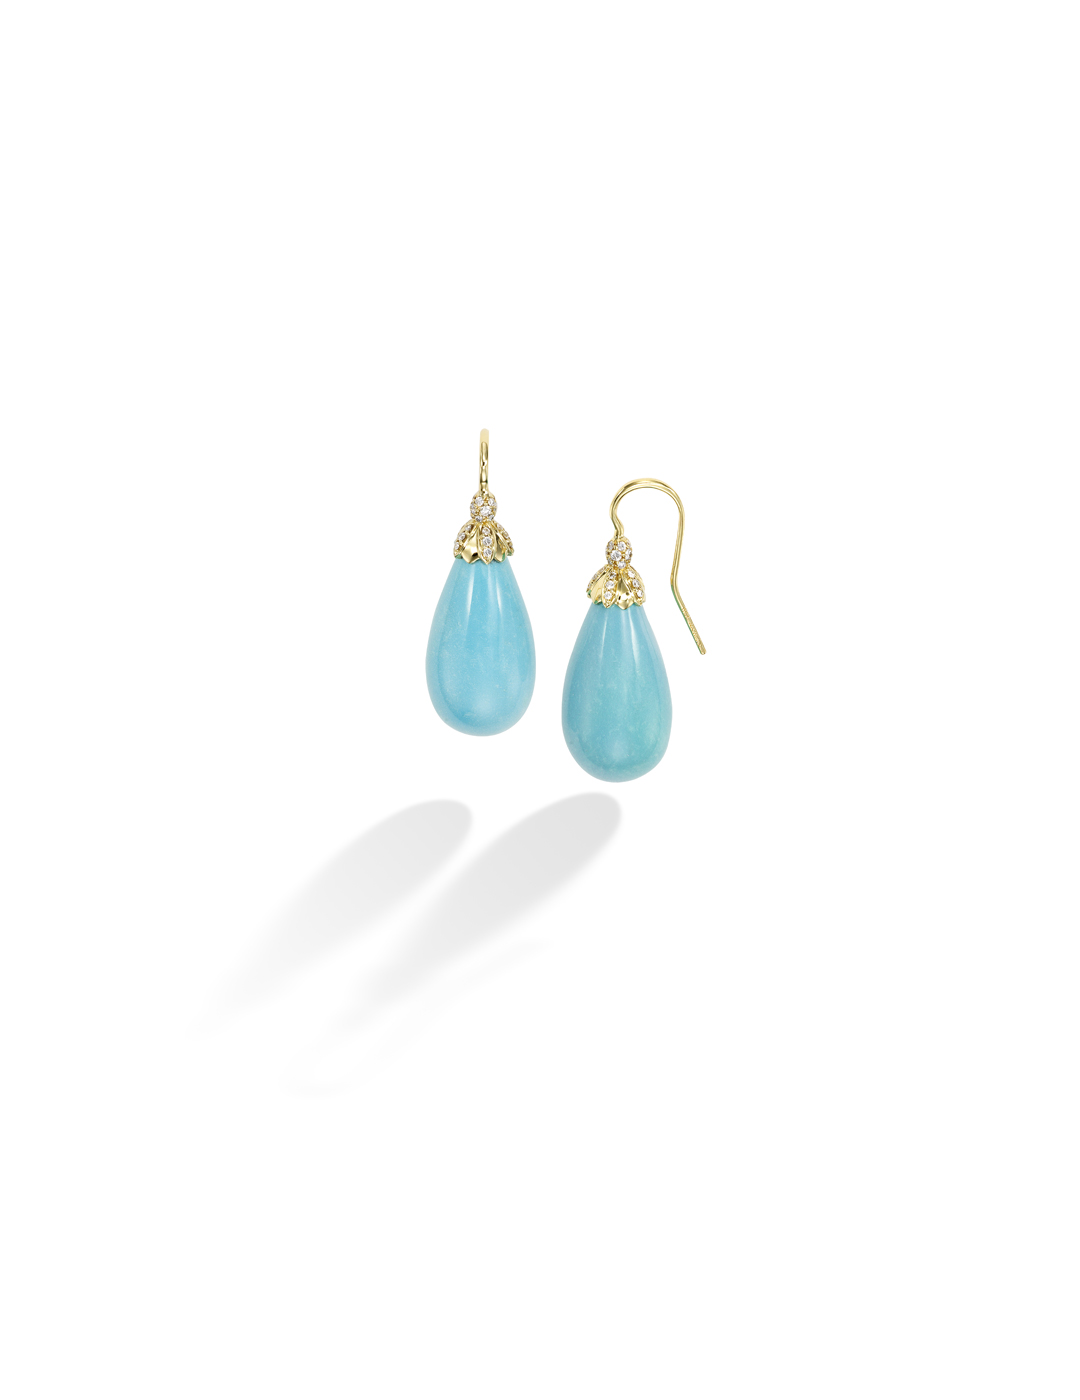 mish_products_earrings_Camy-Turq-ER-1